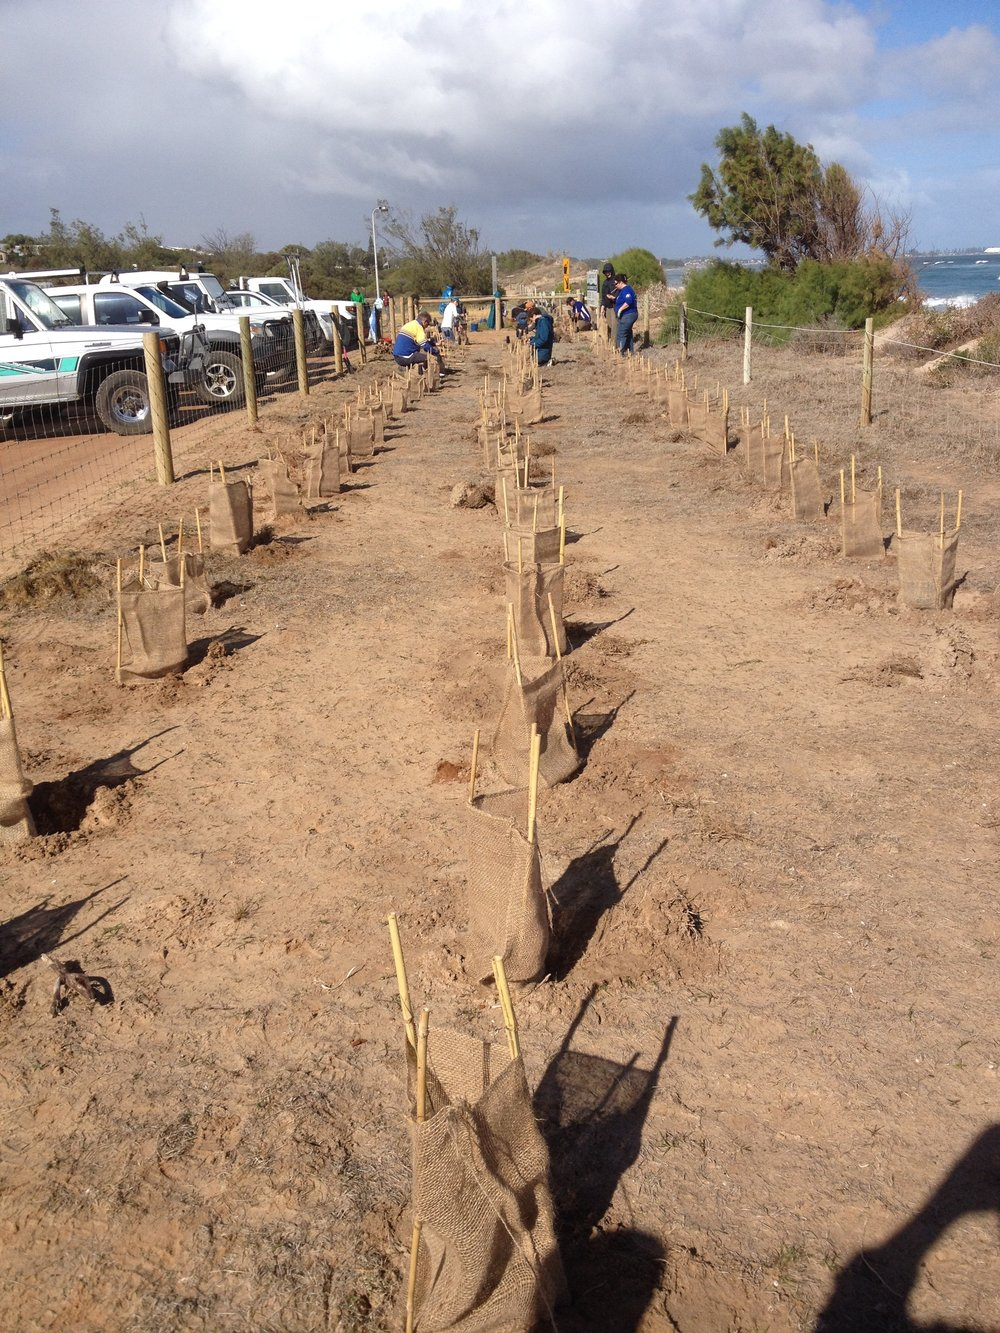 New hessian tree guards, developed by the City in response to community concern regarding using plastic, protect seedlings recently planted by the Sunset Beach Community Group at Triton Place in Sunset Beach.